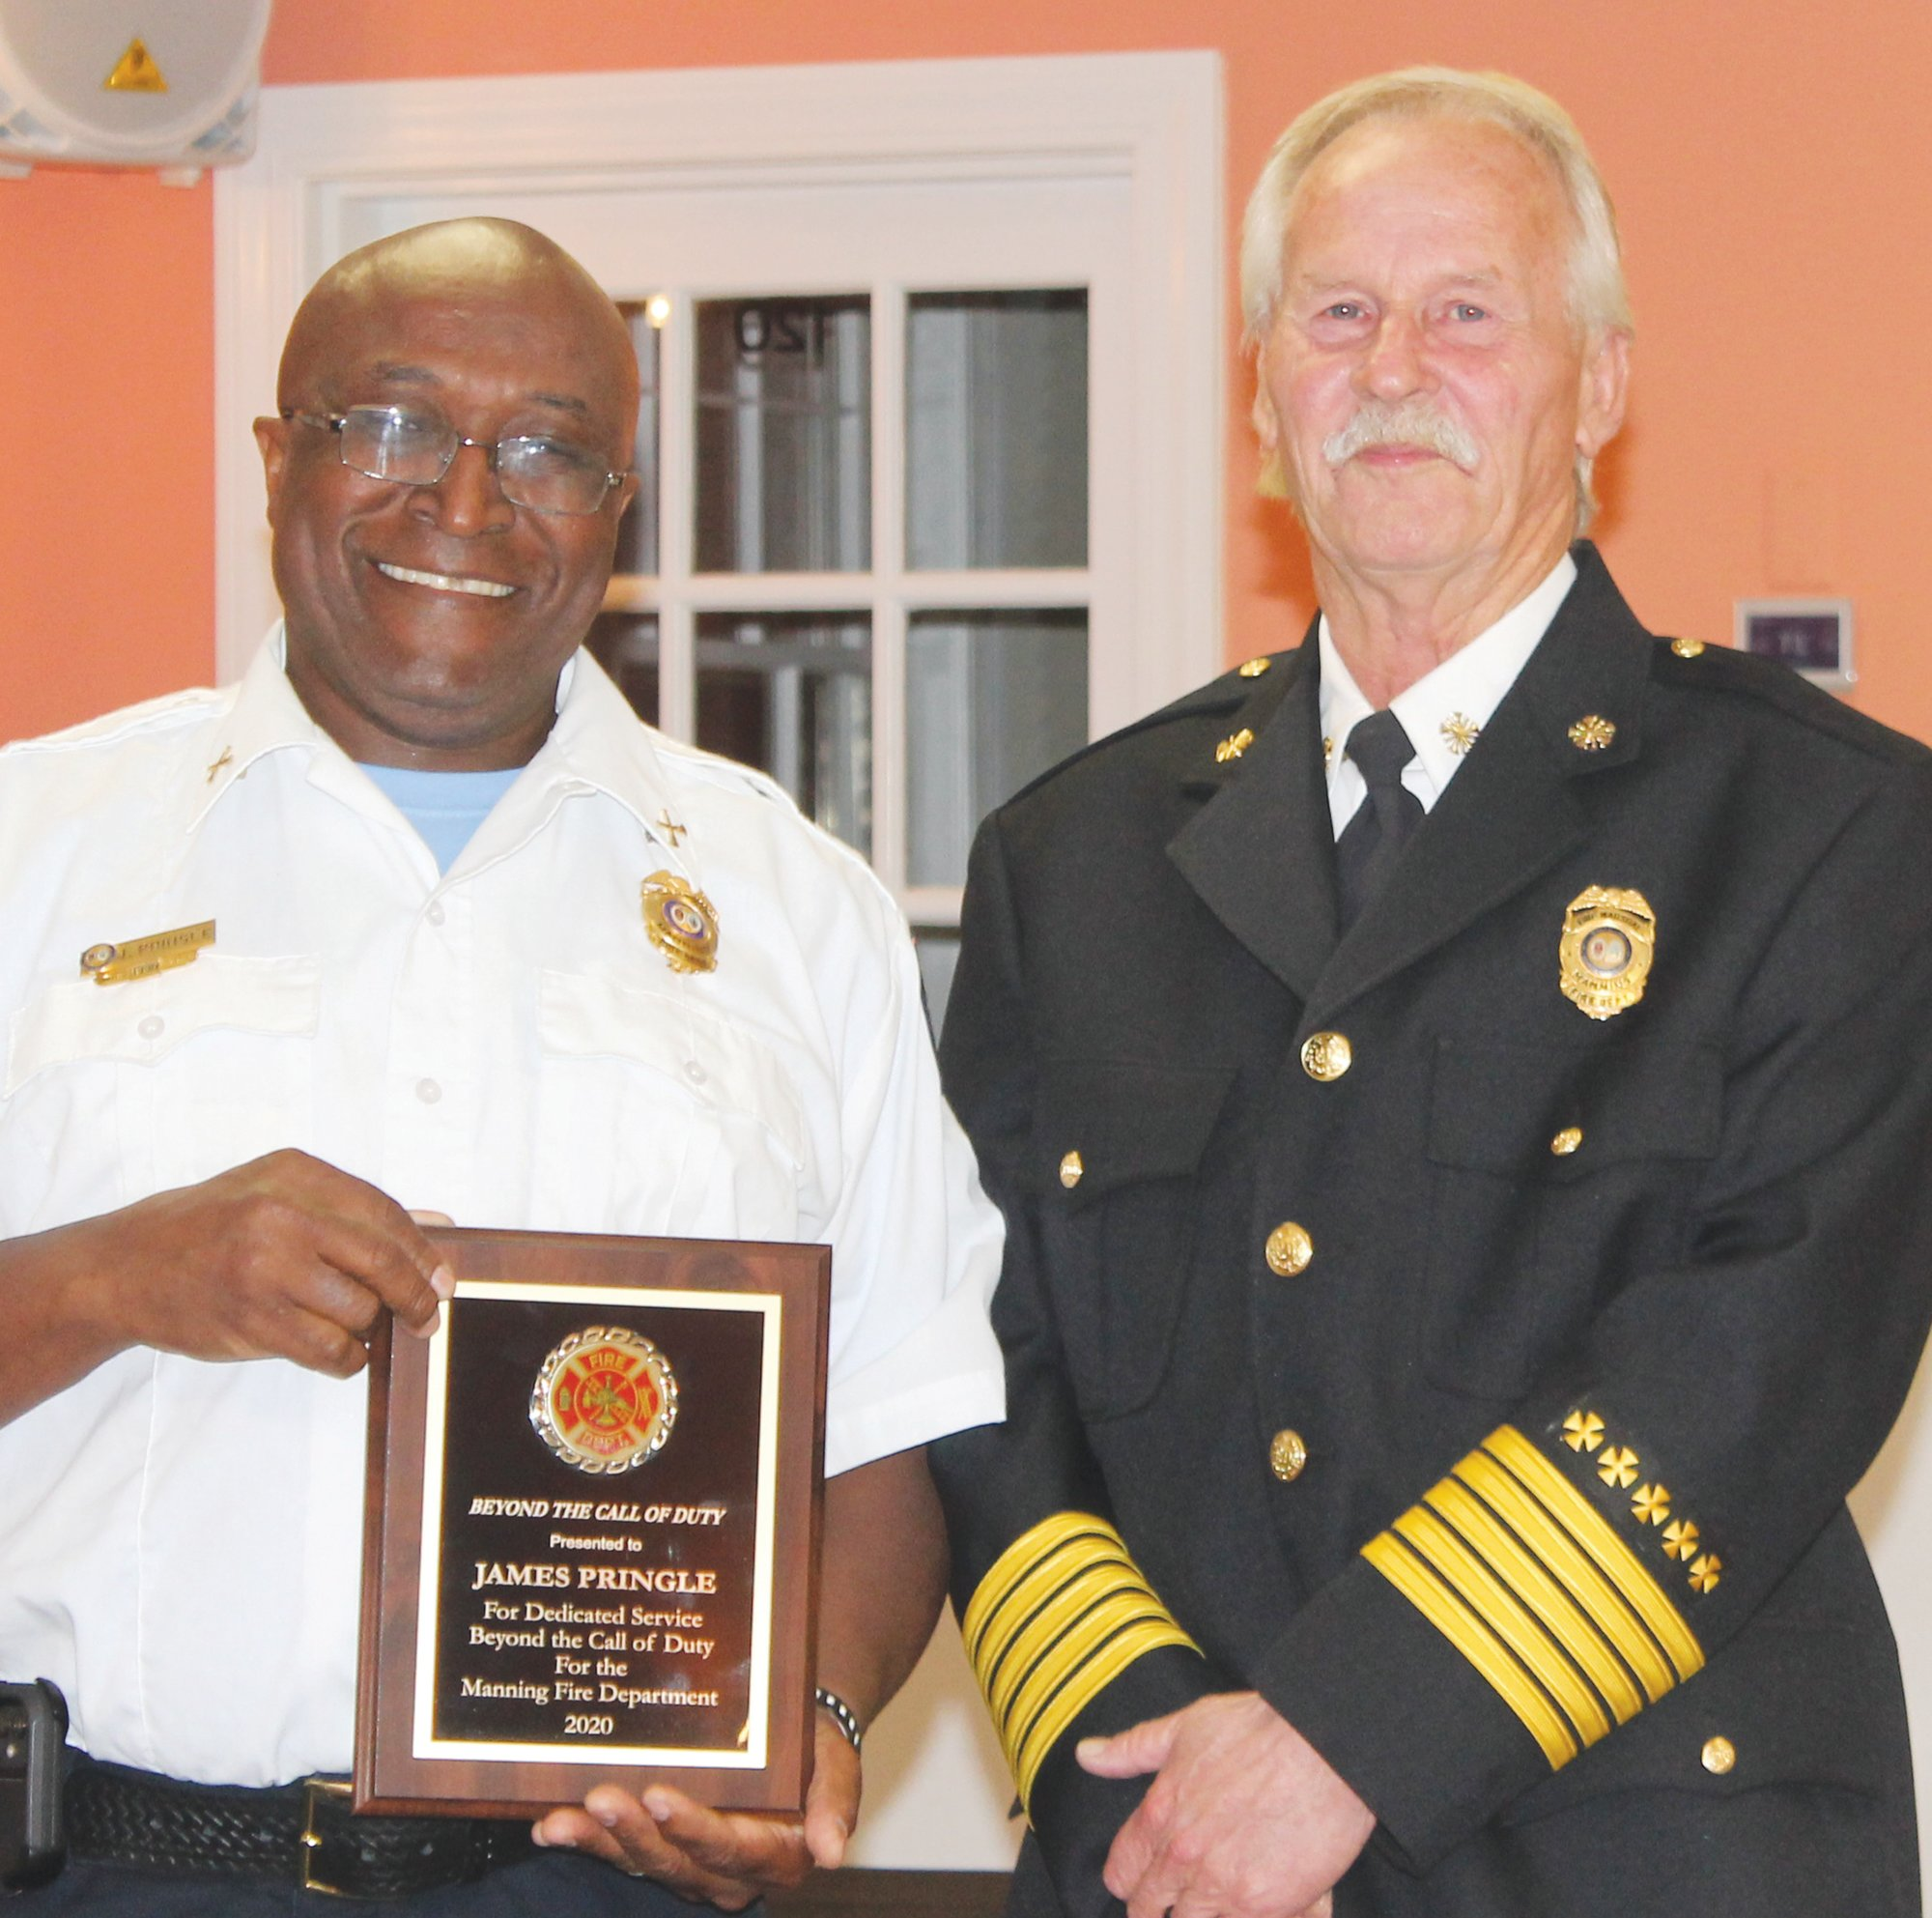 Manning Fire Chief Mitch McElveen presented Capt. James Pringle with the department's Beyond the Call of Duty award for his contributions to both the department and his community.